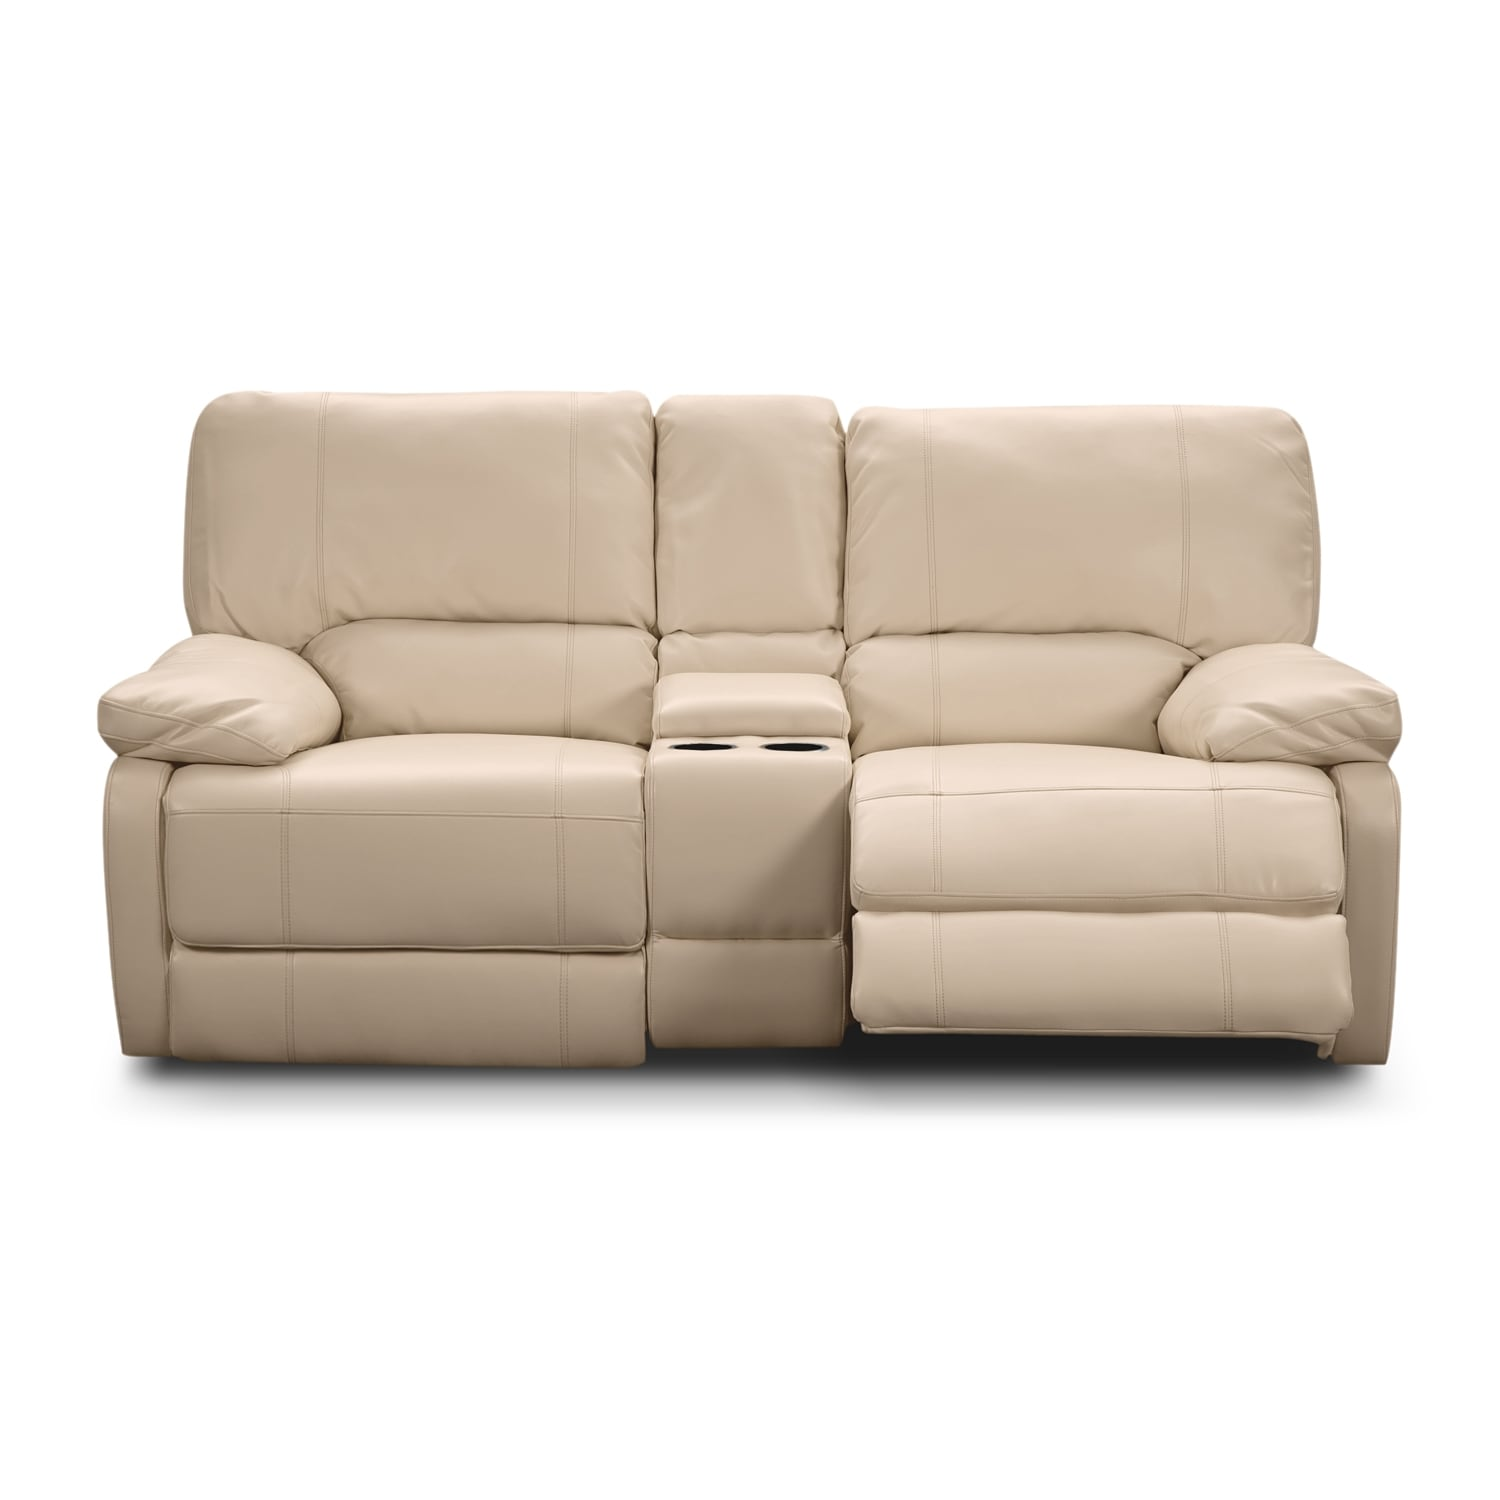 Coronado Leather Power Reclining Loveseat Value City Furniture